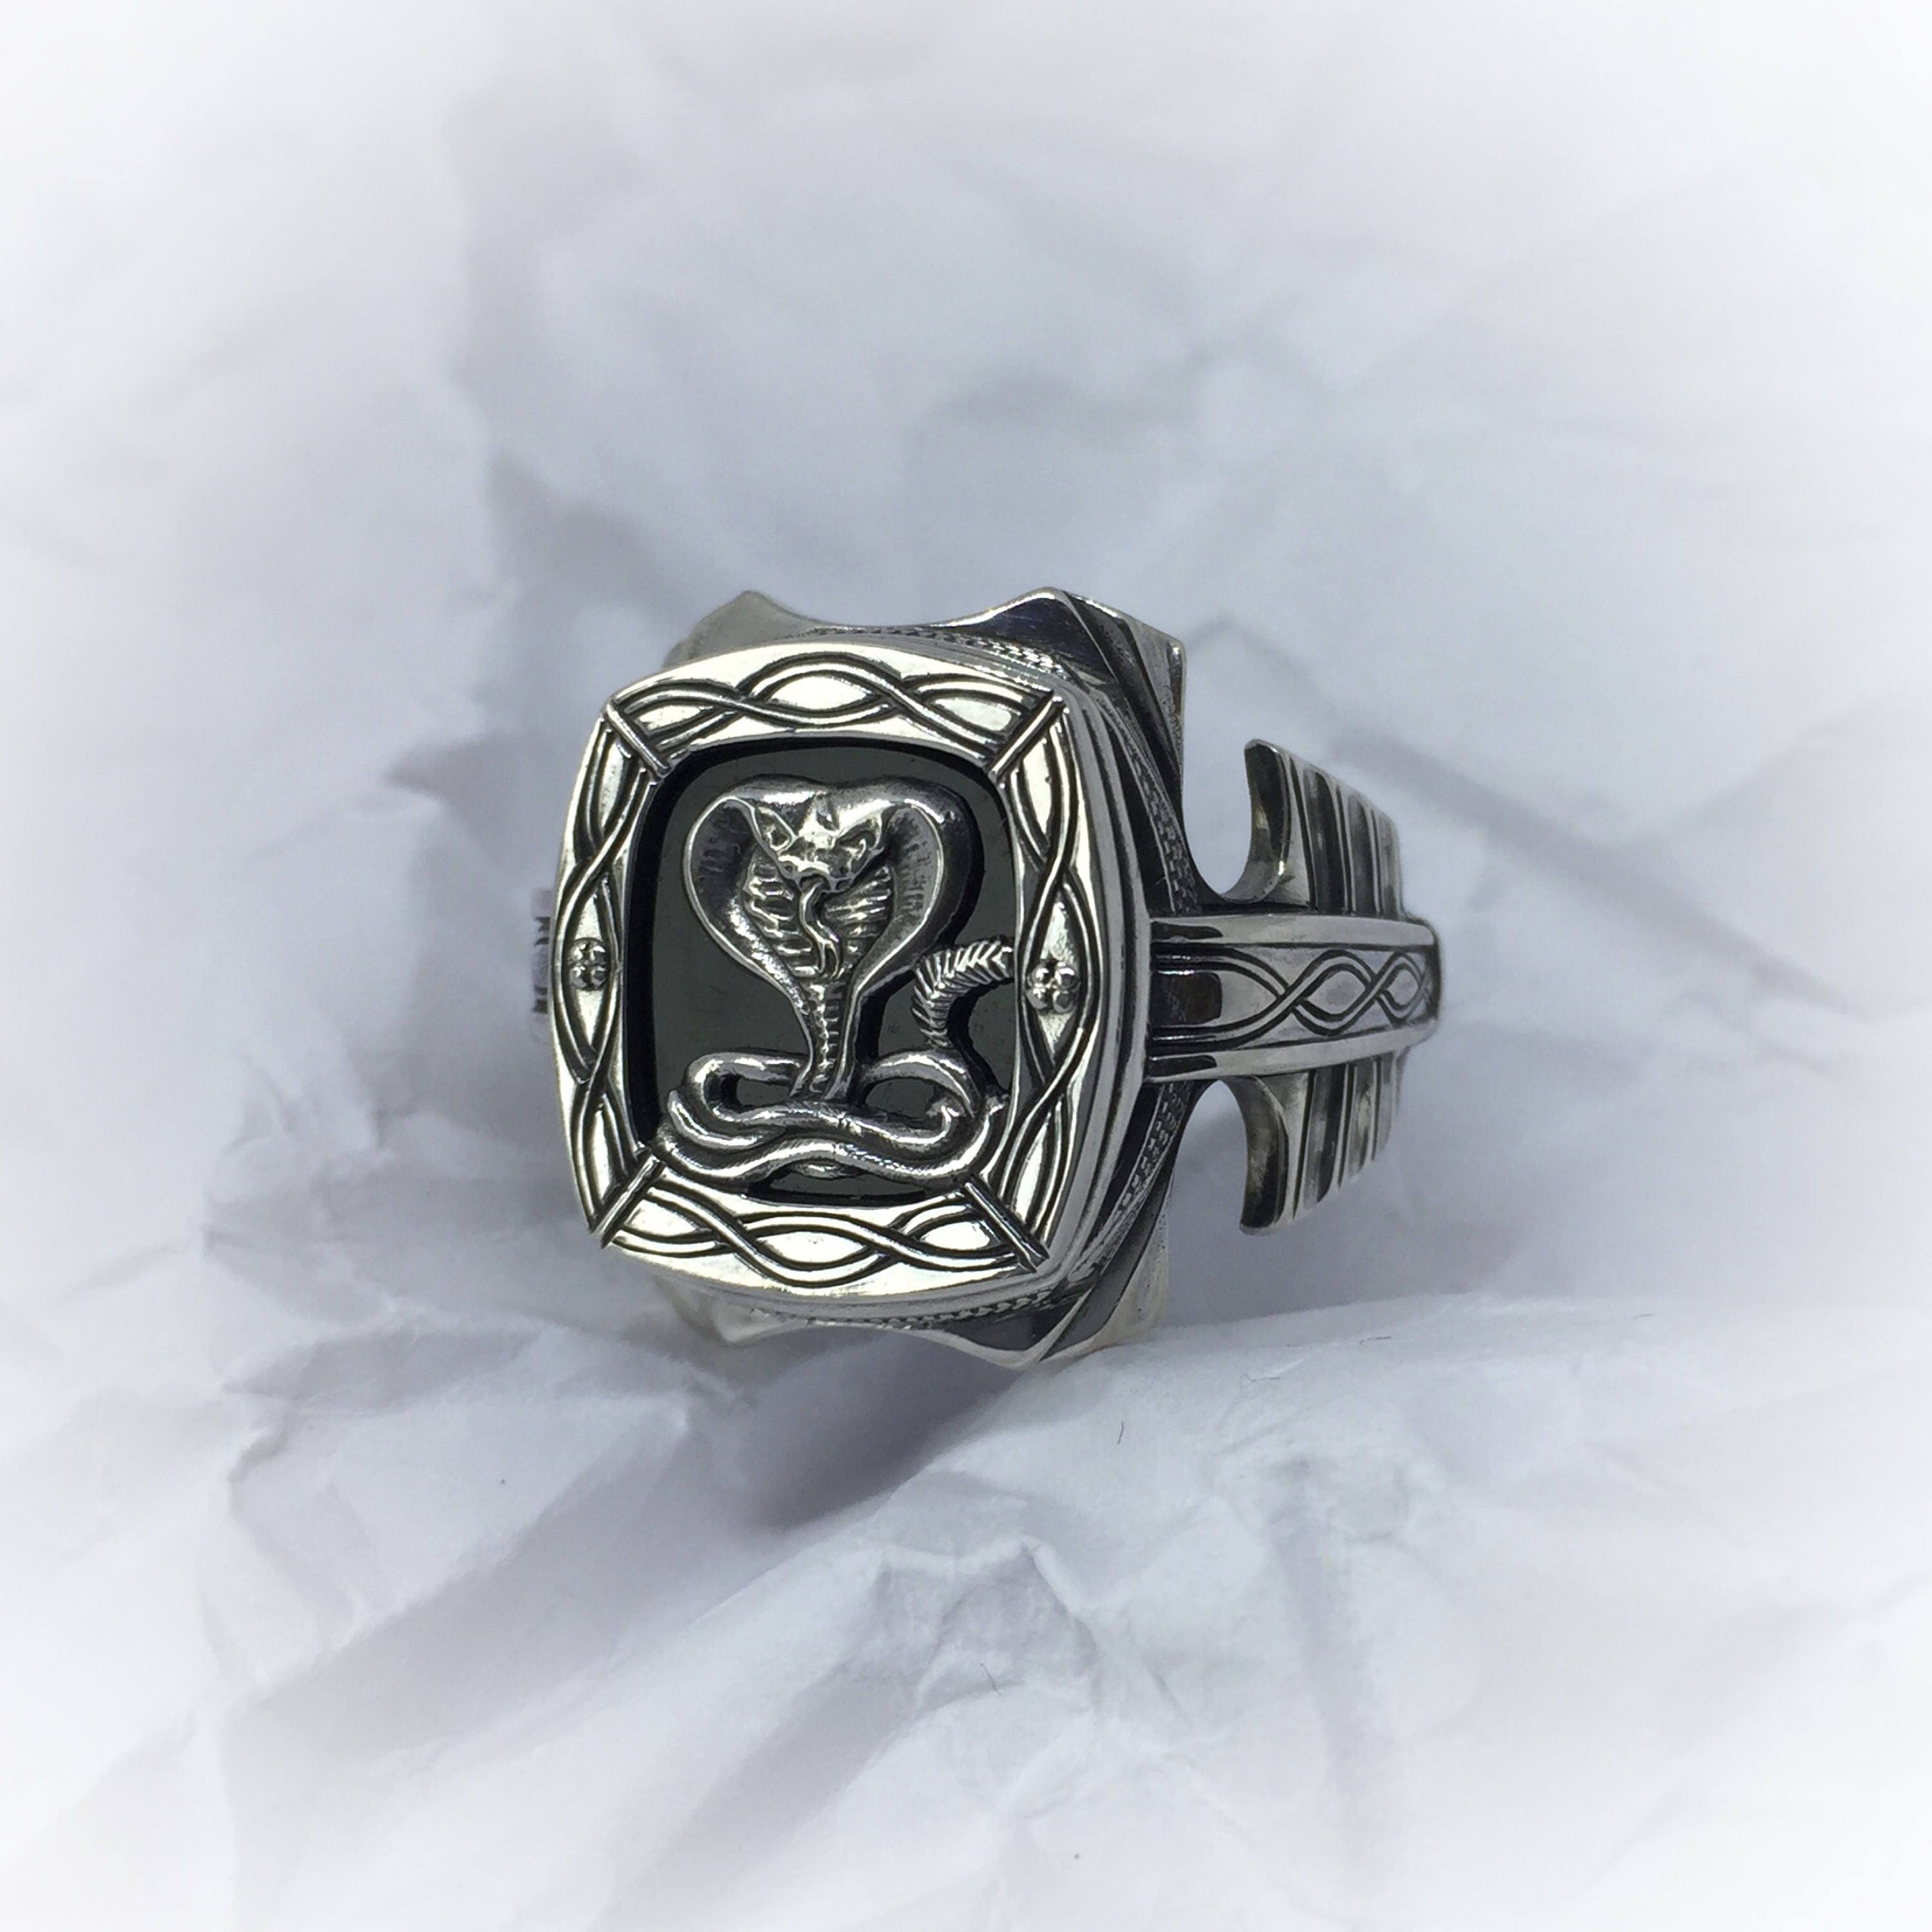 obsidian ring of the zodiac